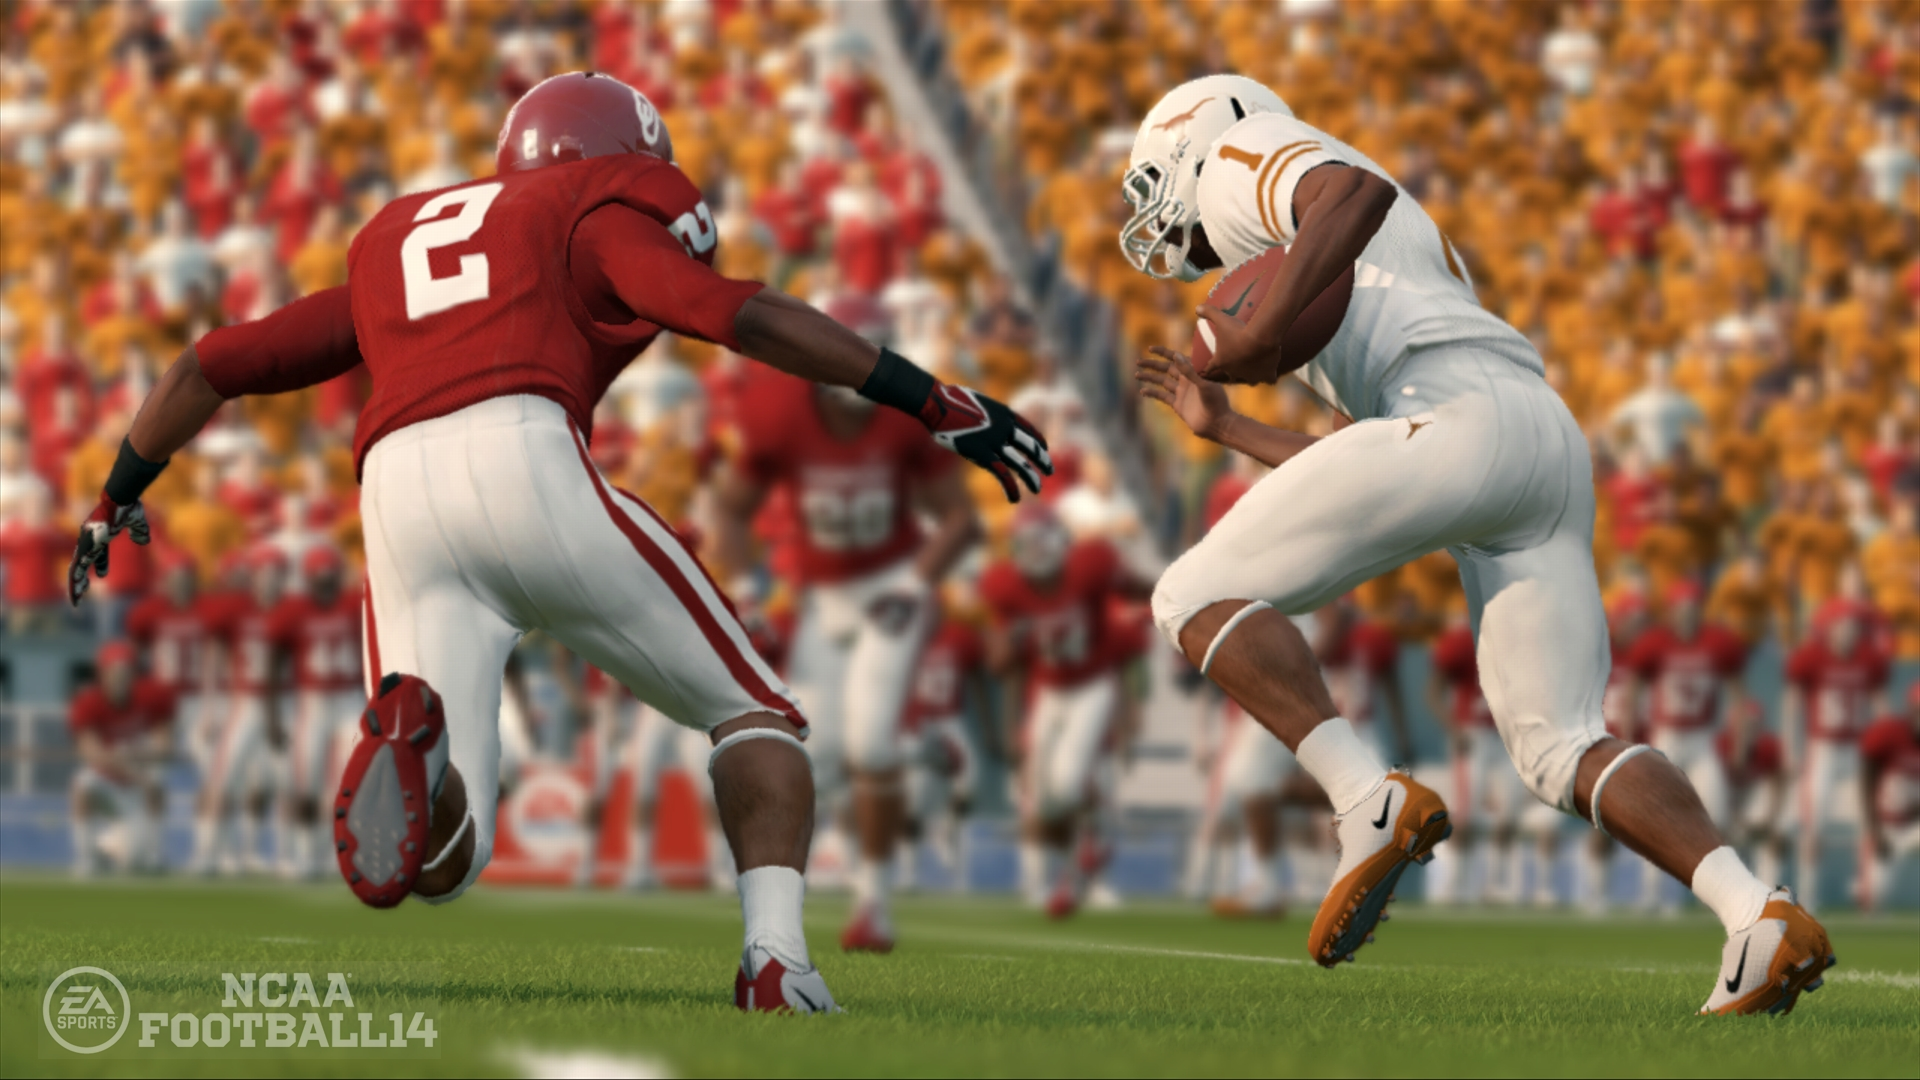 20/4/2013 - NCAA 14 - Screen 4